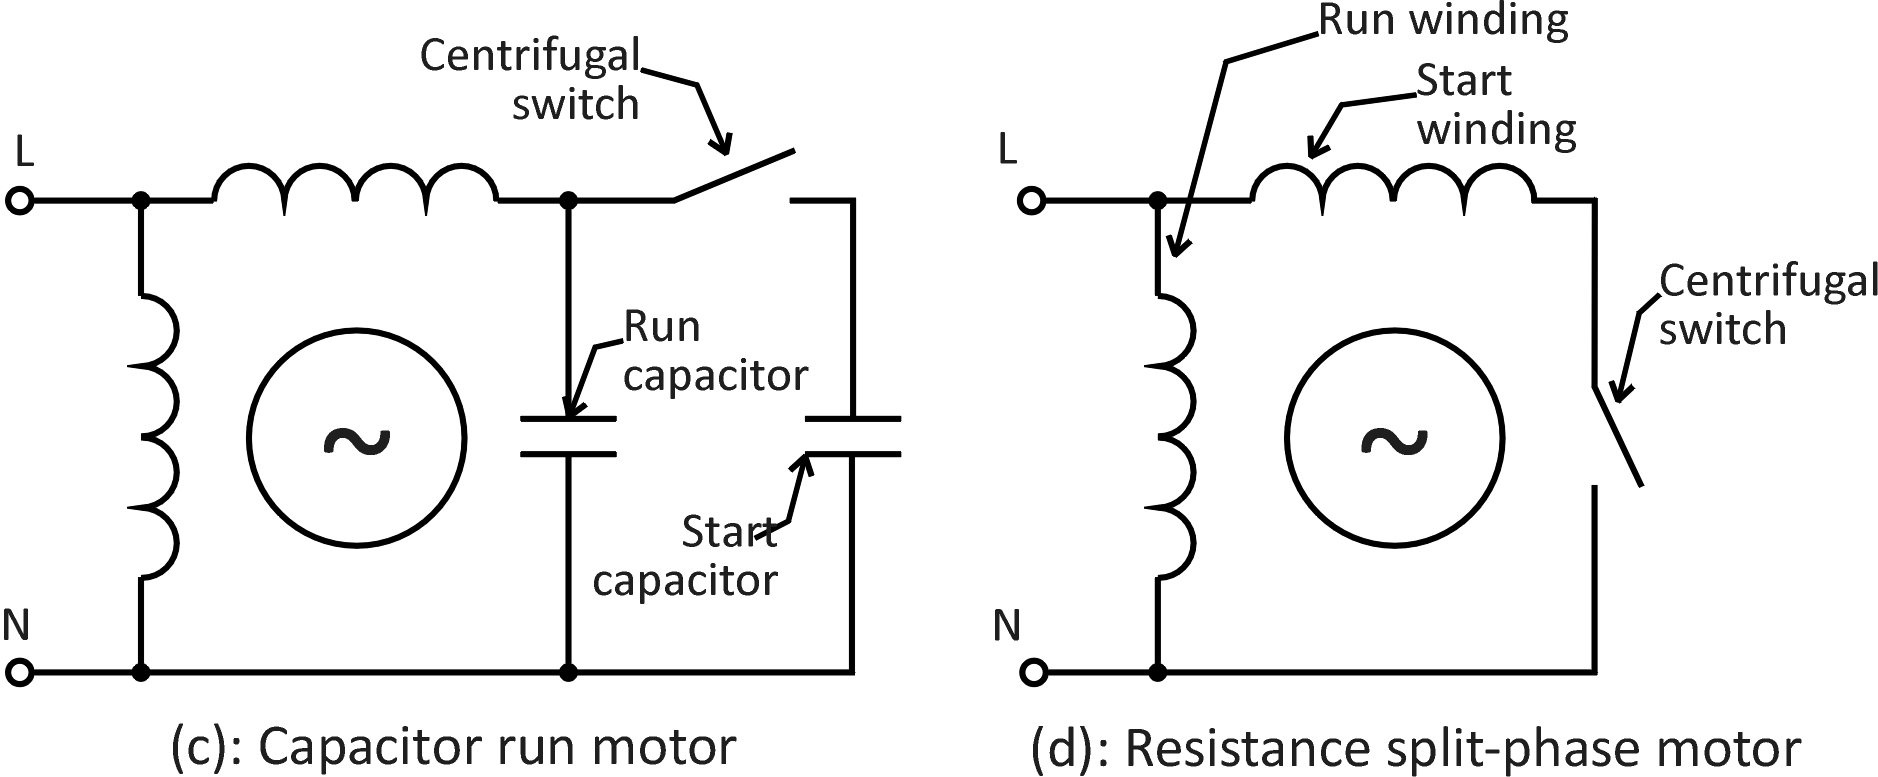 What is the wiring of a single-phase motor? - Quora  Lead Single Phase Motor Wiring Diagrams on